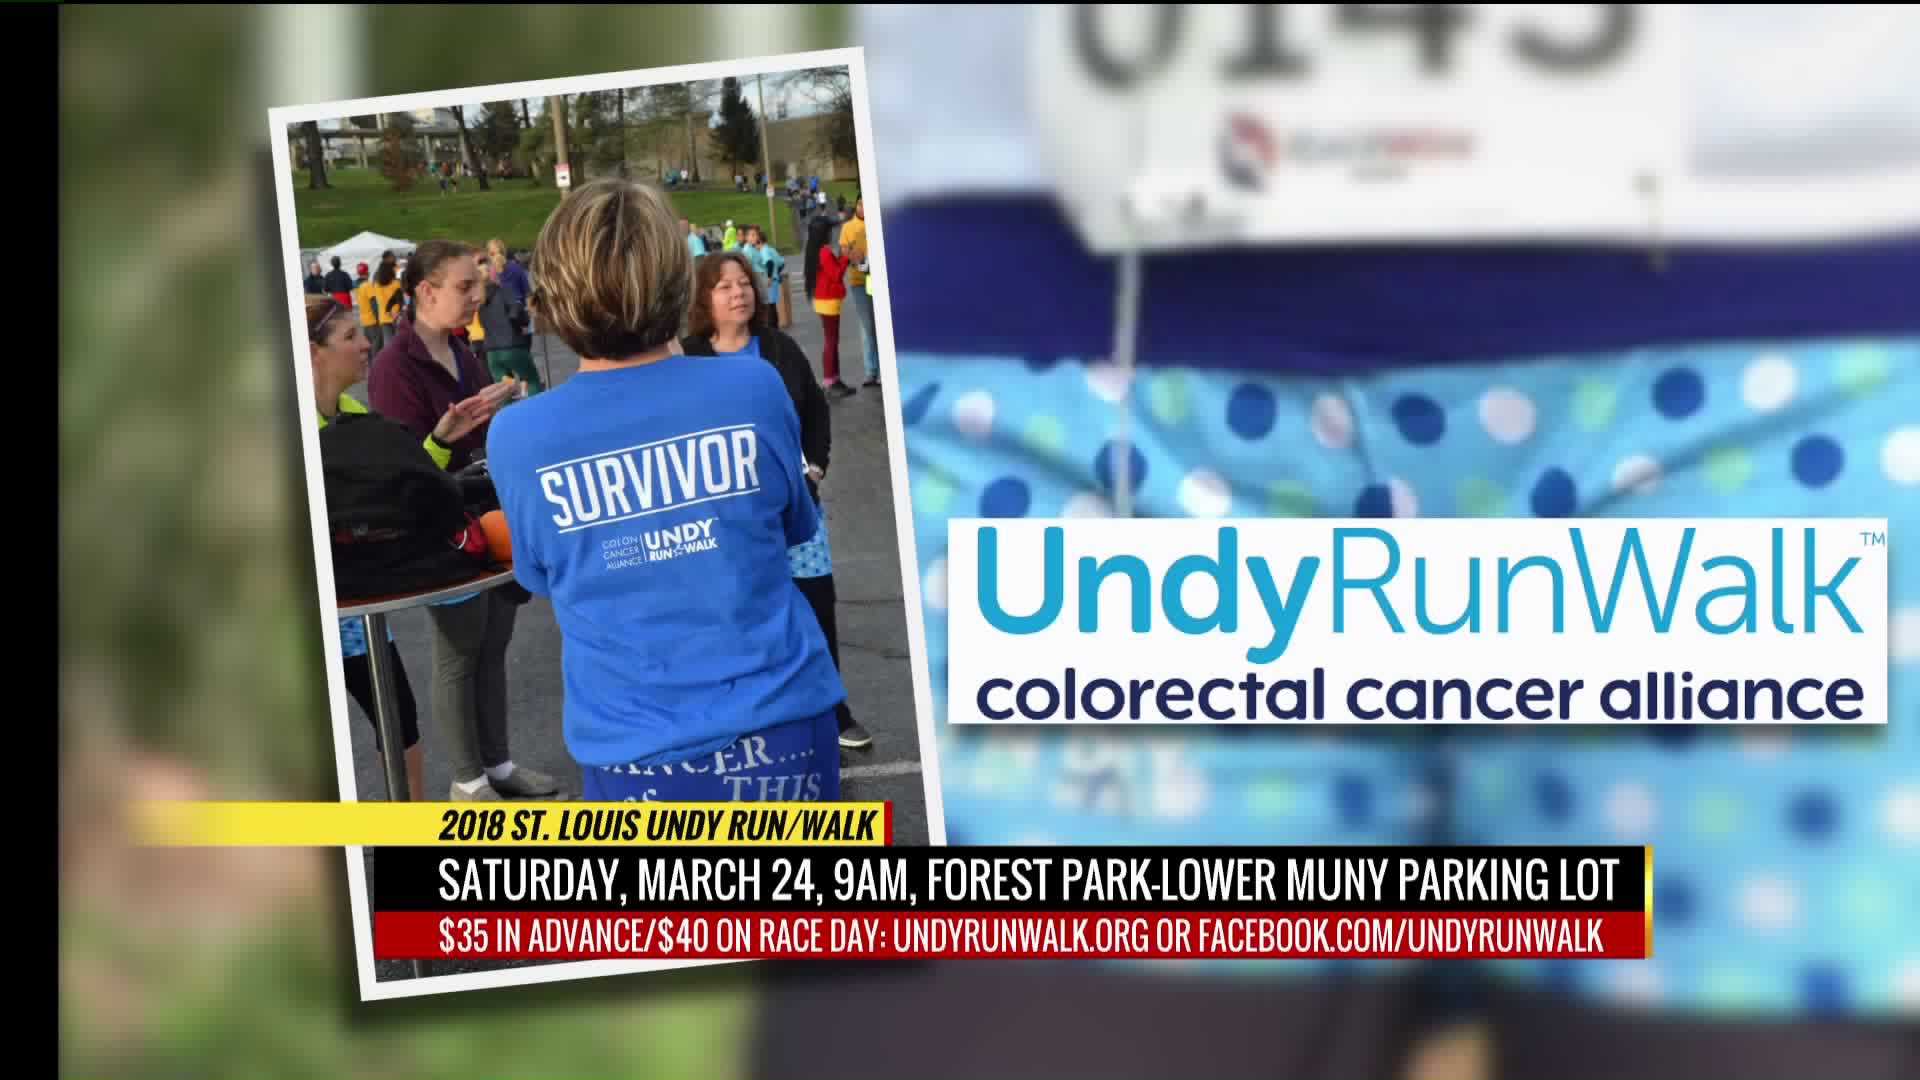 2018 Undy Runwalk Raises Funds For Colorectal Cancer Screenings Fox 2